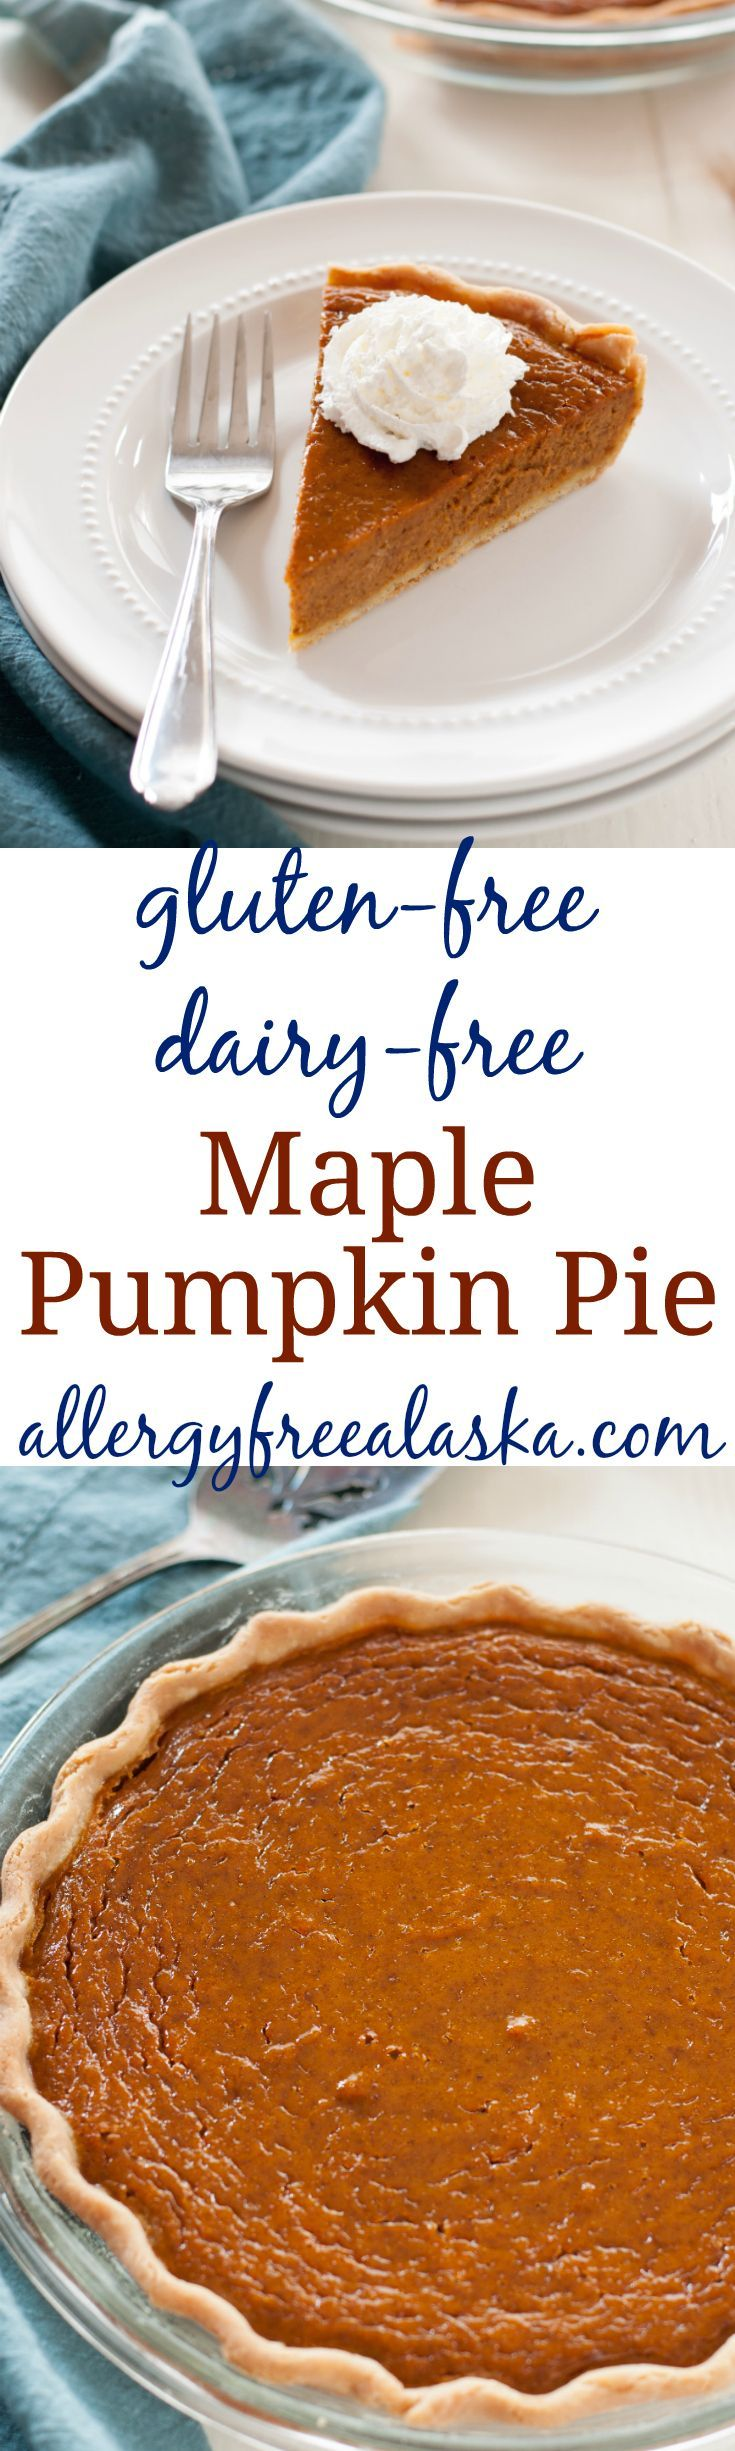 This mouth watering Maple Pumpkin Pie is a hit at every holiday gathering. No one will guess it's gluten-free, let alone dairy-free and refined sugar-free!